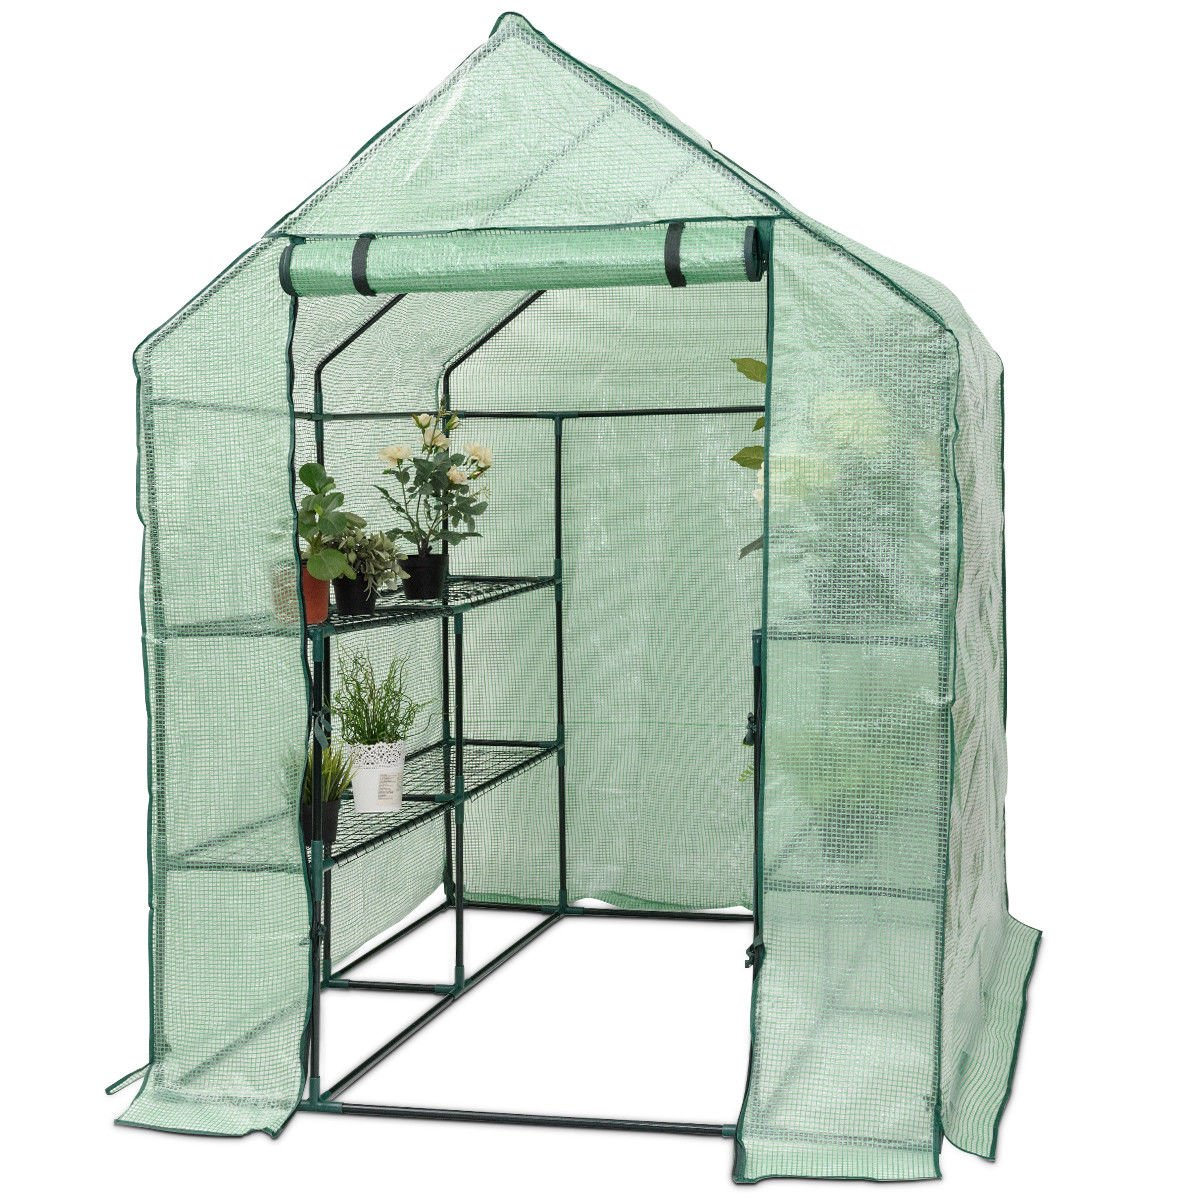 Super buy Portable Greenhouse 8 Shelves Mini Walk In Outdoor Green House 2 Tier for Garden Patio Backyard